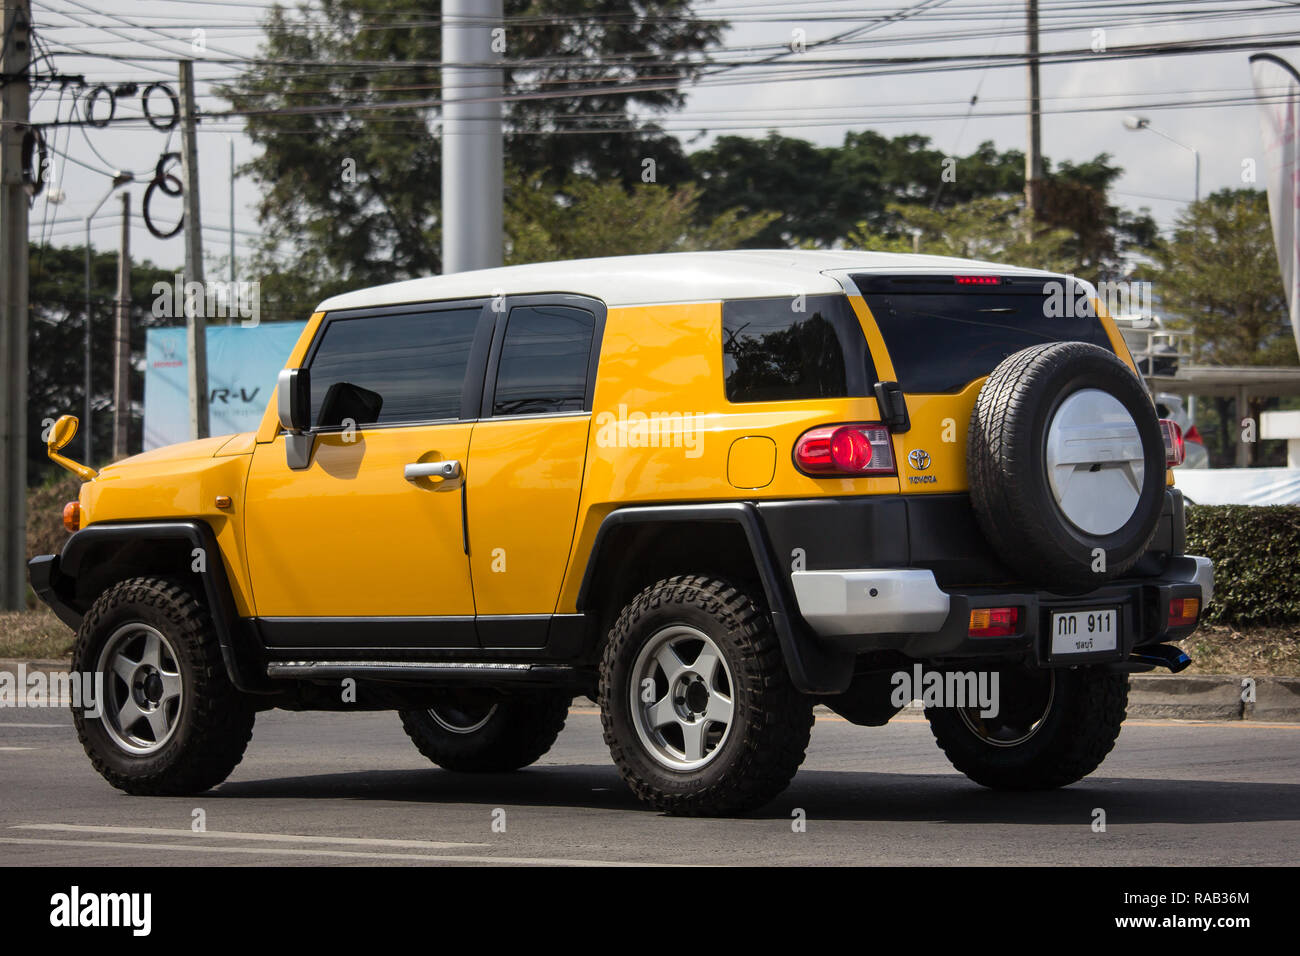 Chiangmai, Thailand - January 3 2019: Private car, Toyota FJ